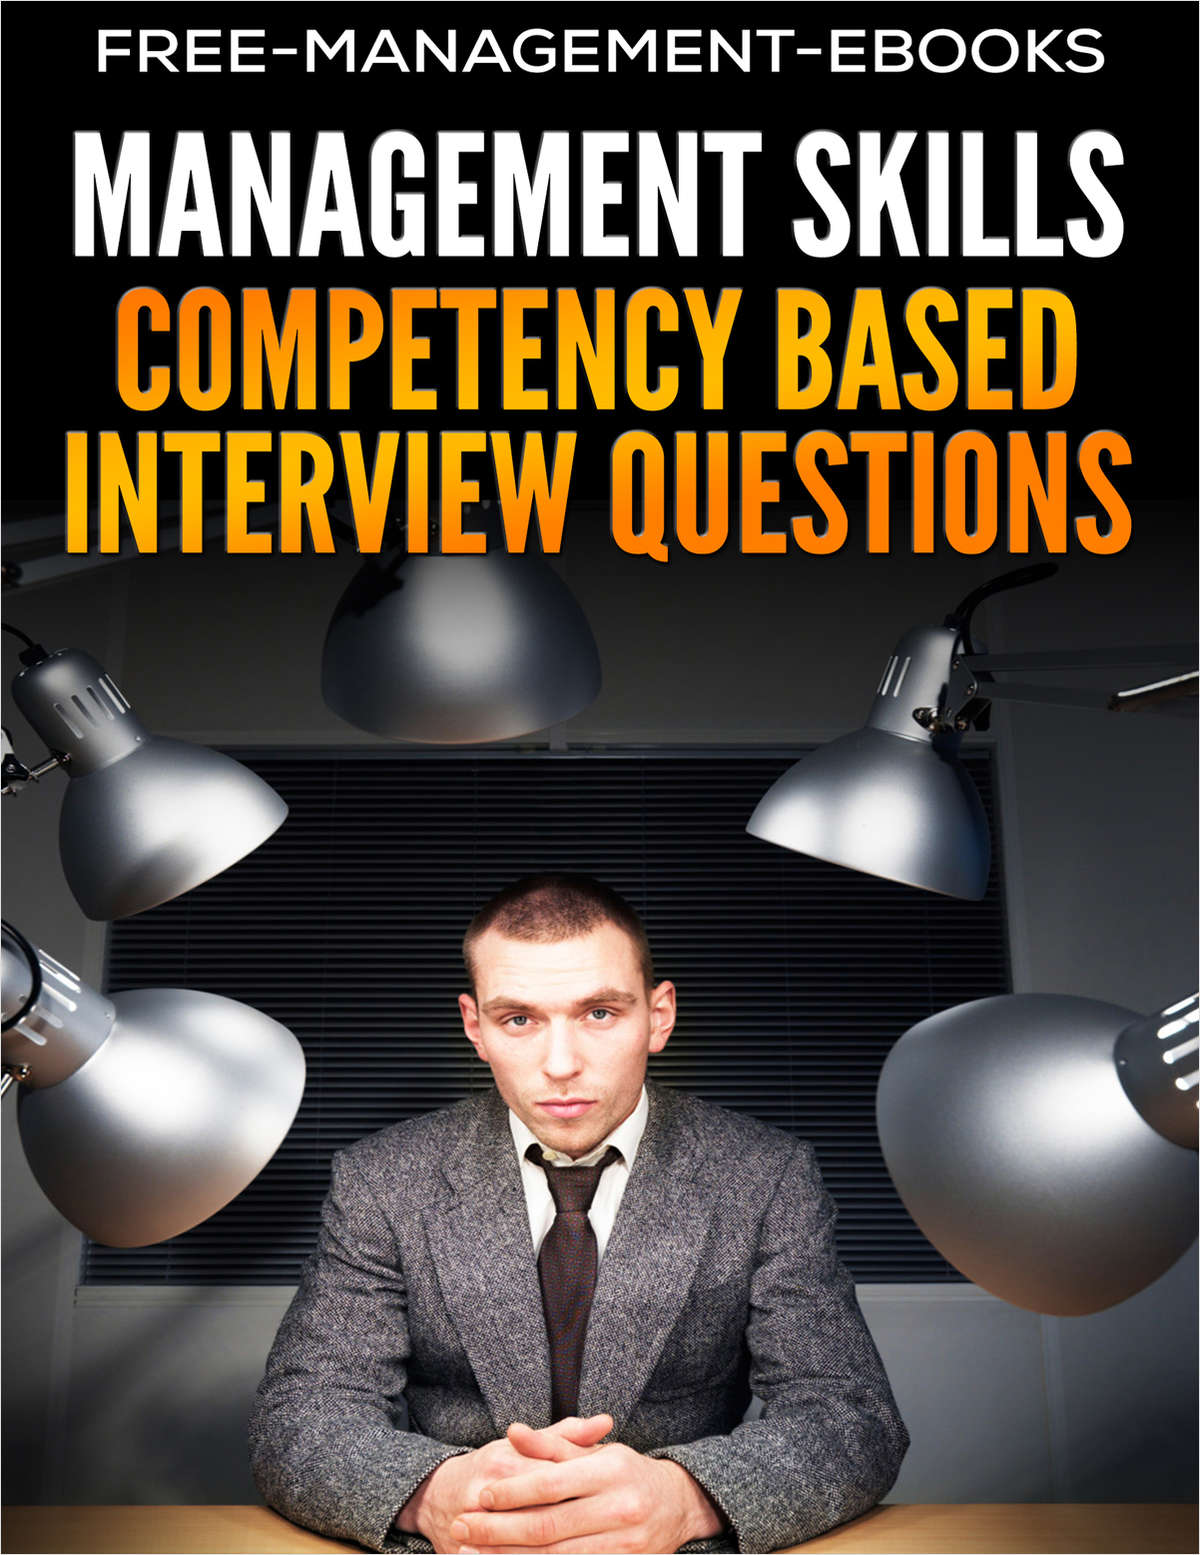 Competency-Based Interview Questions - Management Skills